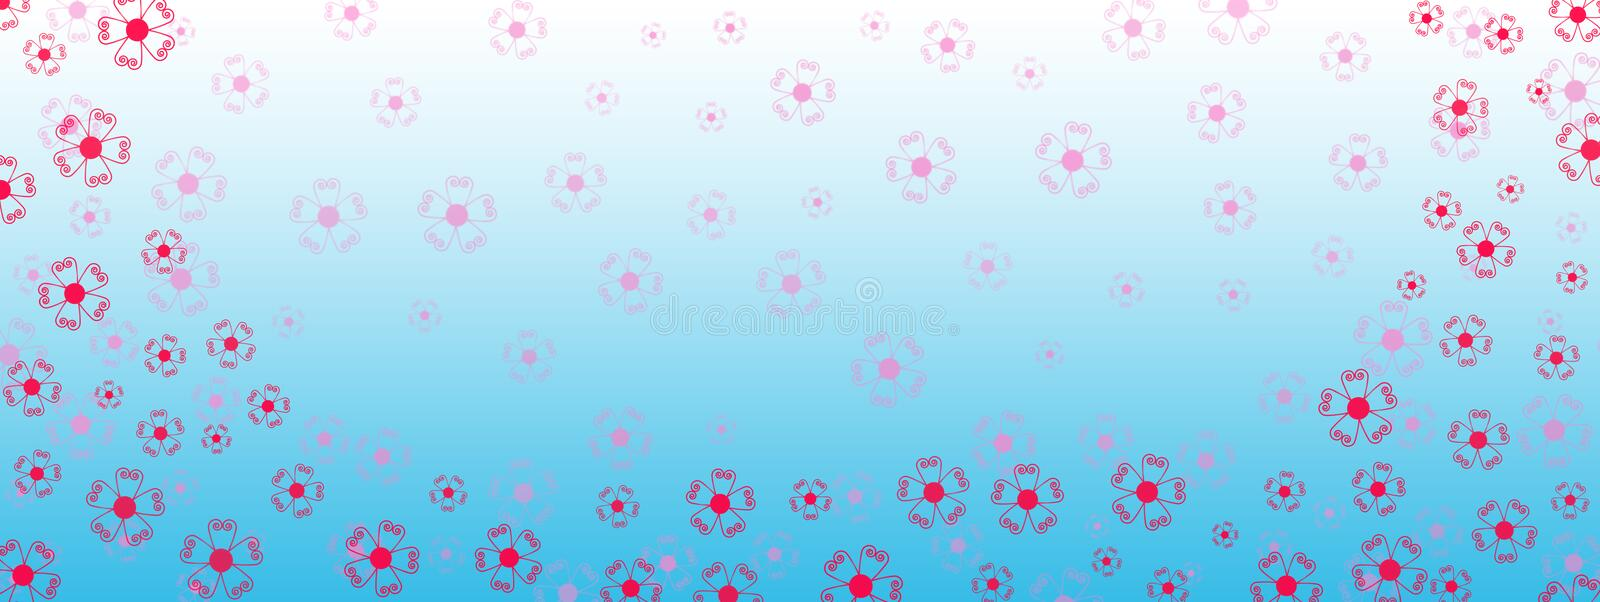 Red and Pink Flowers Border in Gradated Blue Banner Background stock image